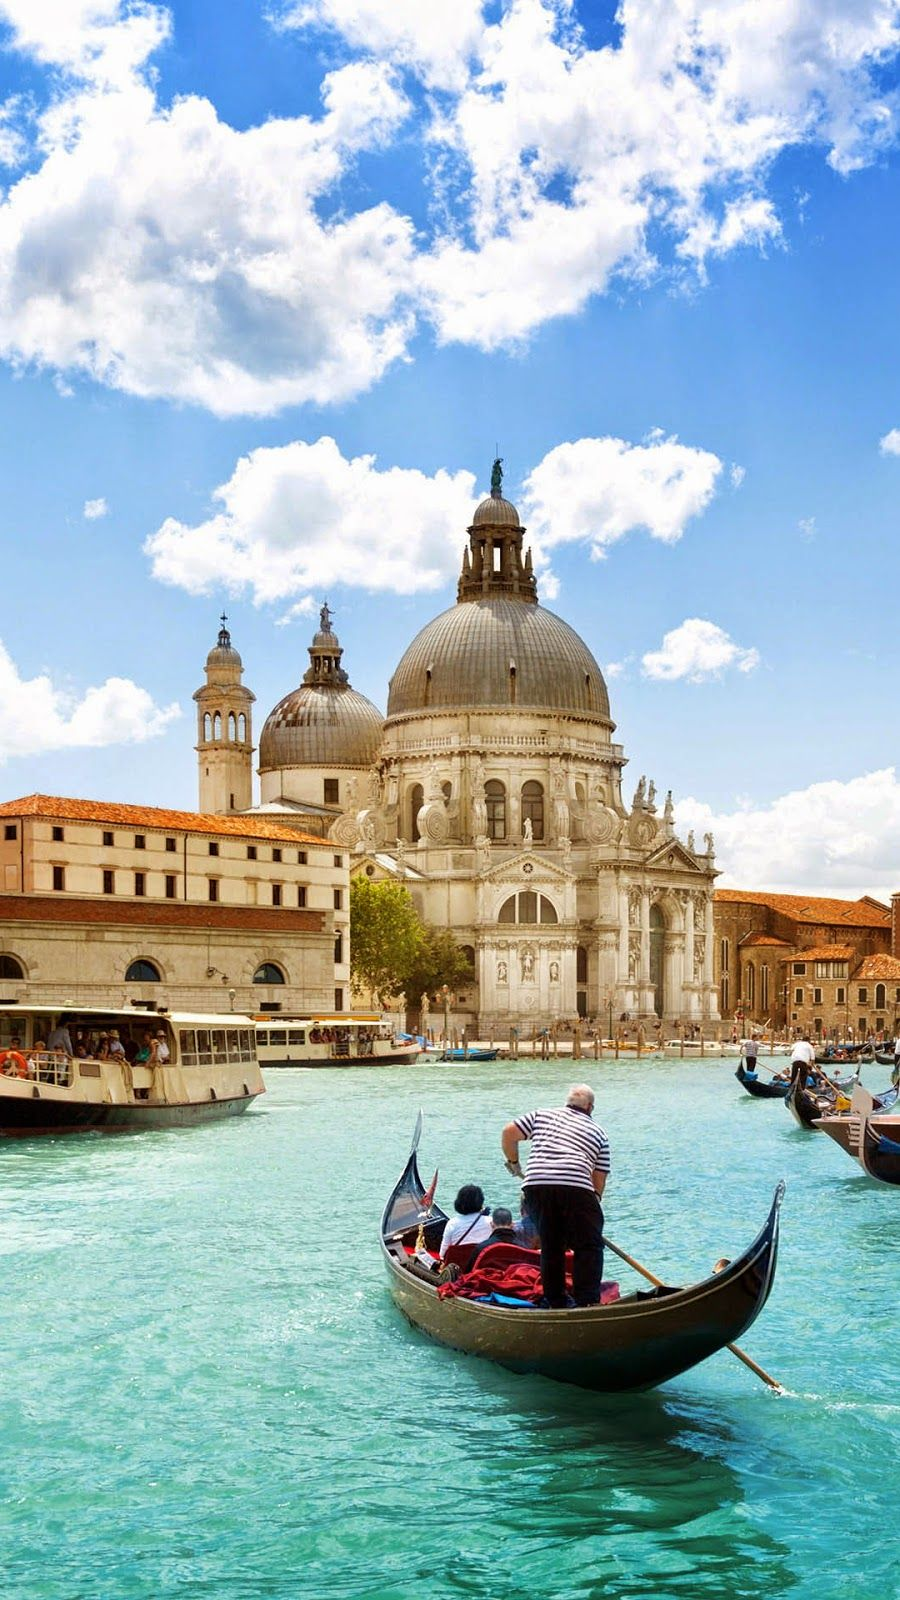 30 Awesome iPhone 6 City View Wallpapers | Pinterest | Venice italy, Wallpaper and Italy